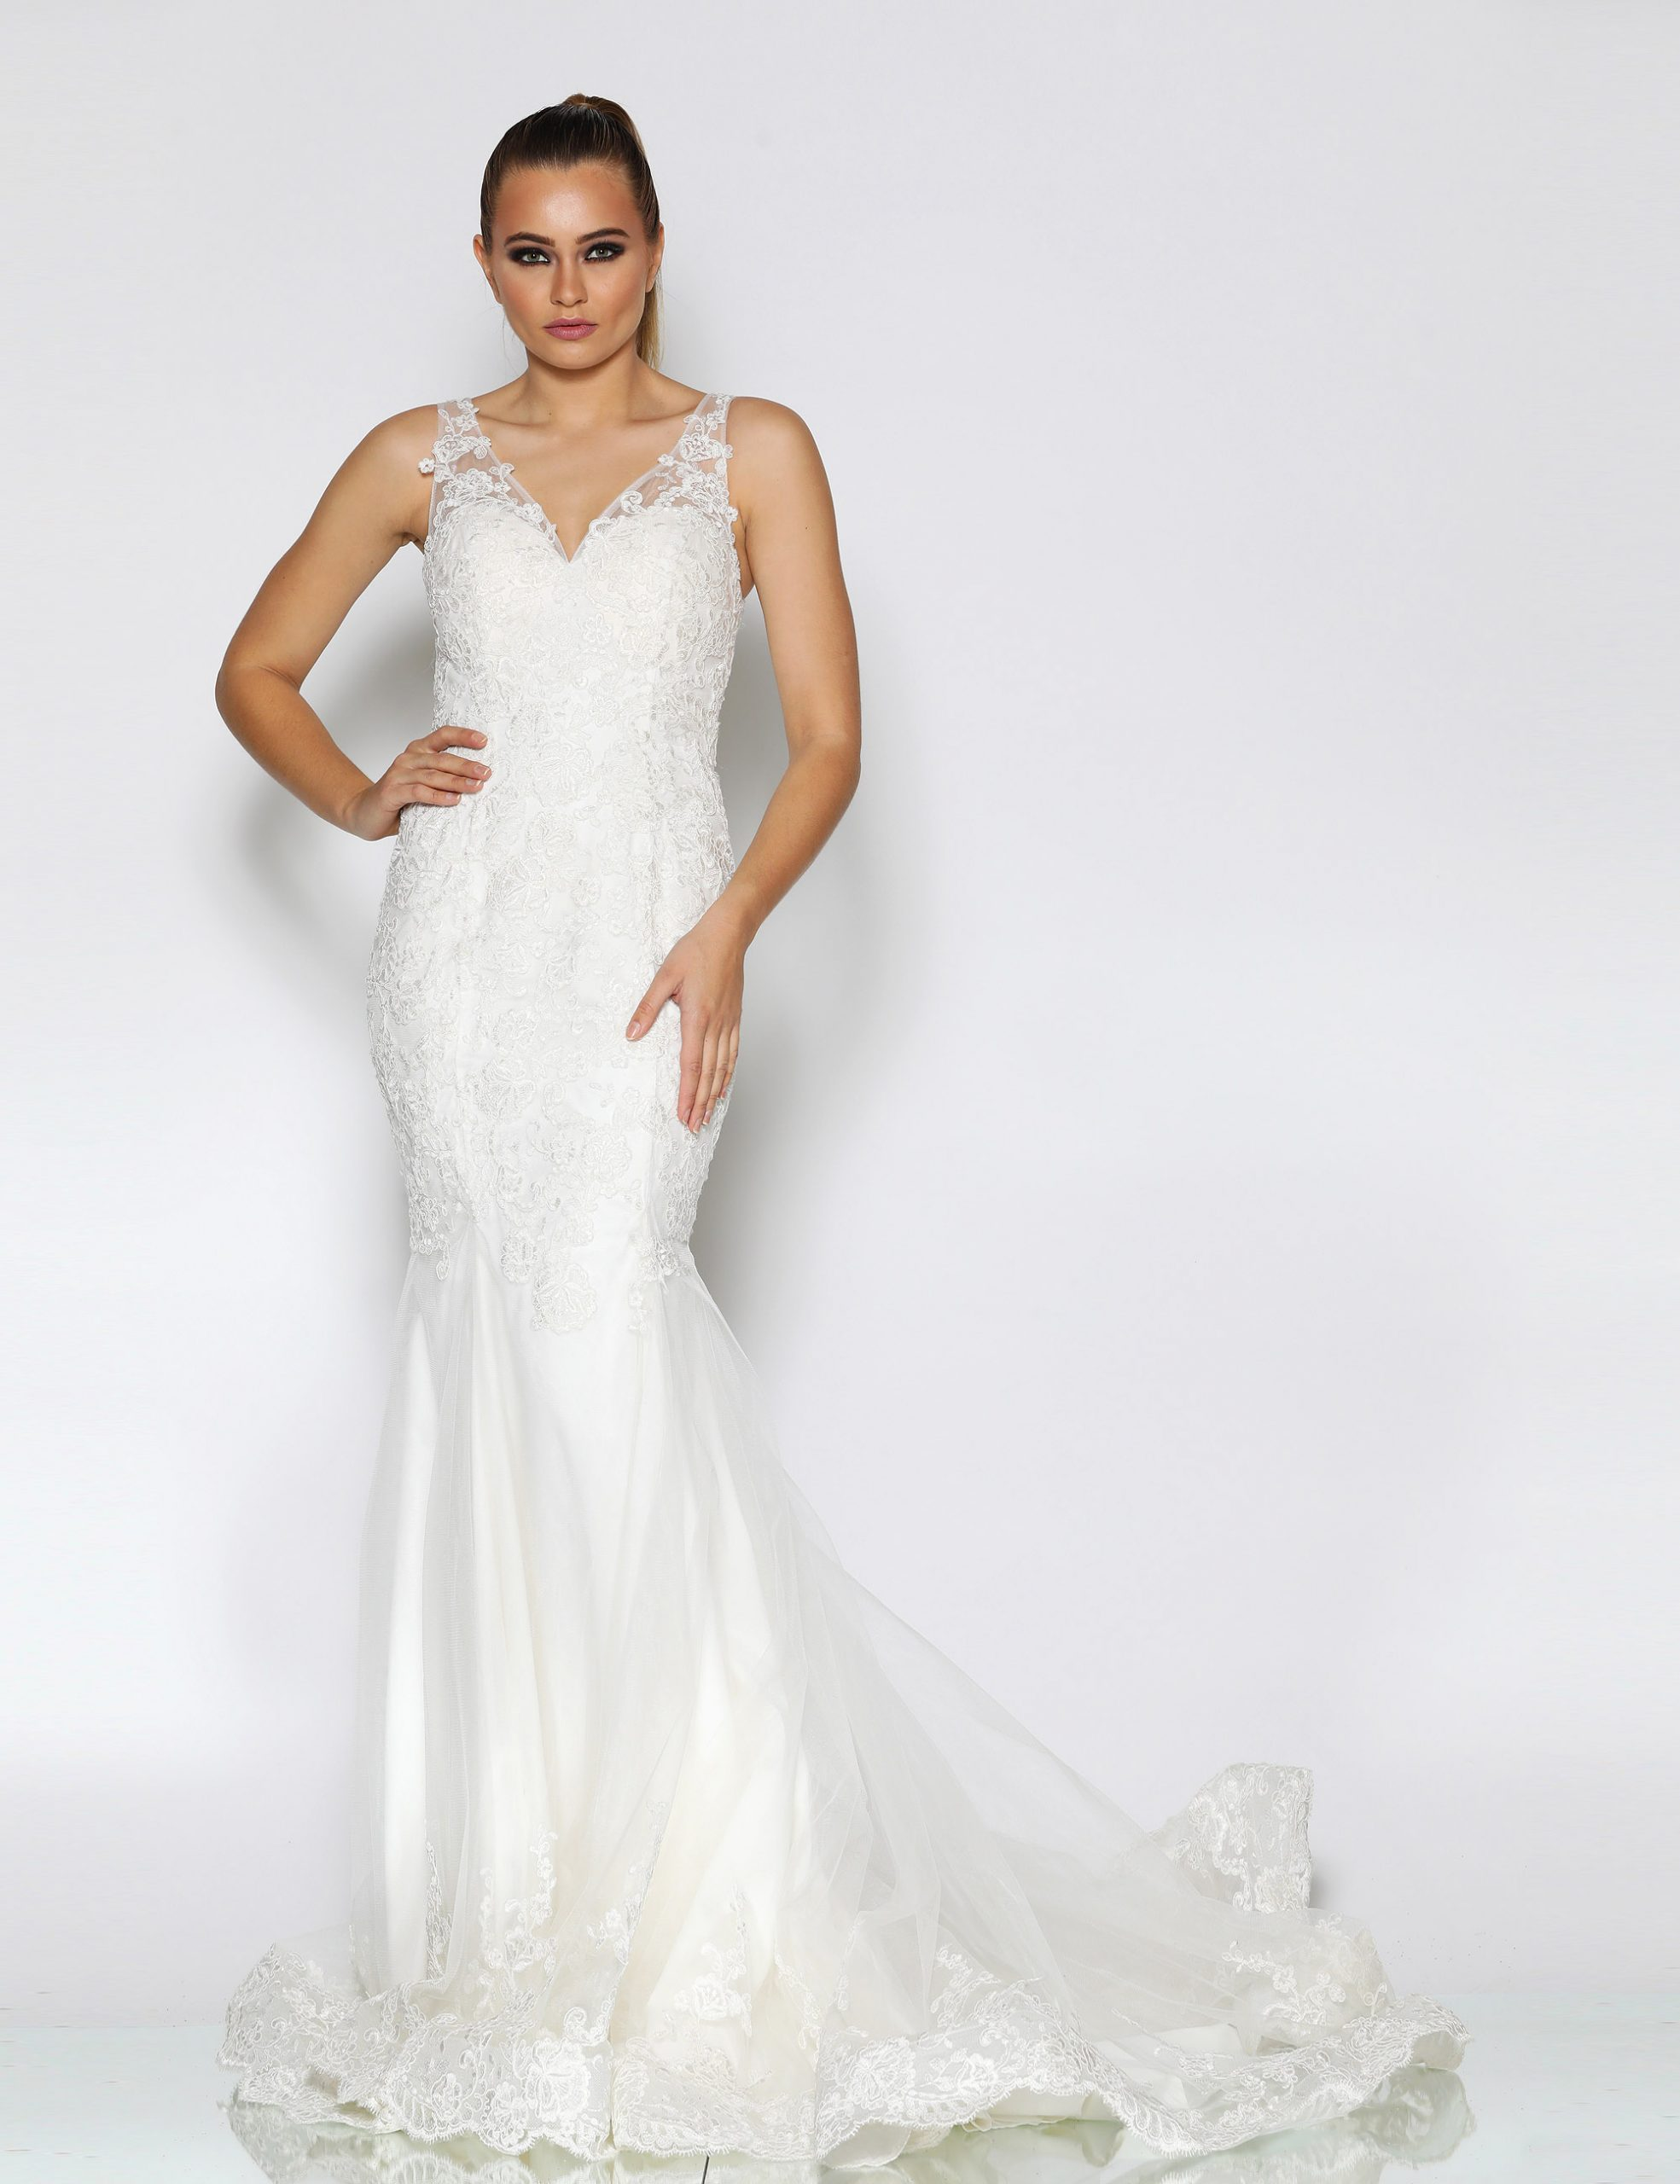 weddingdress19